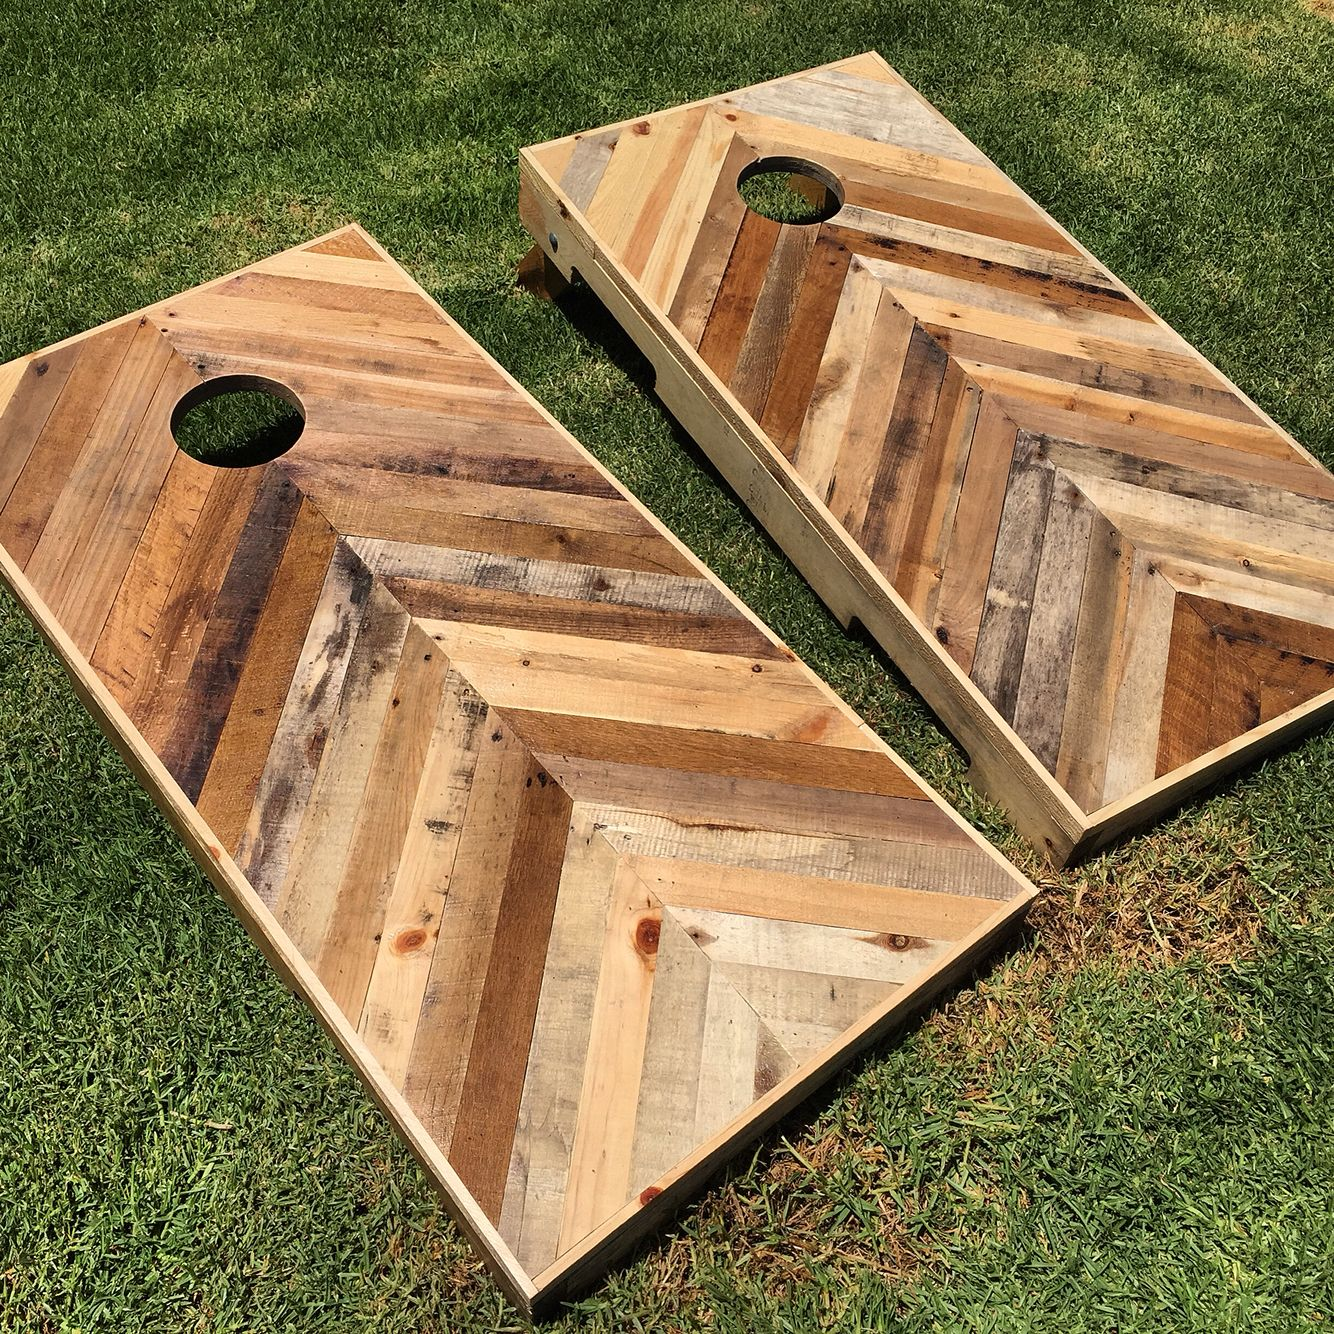 Diy pallet chevron cornhole boards follow me on instagram Pallet ideas